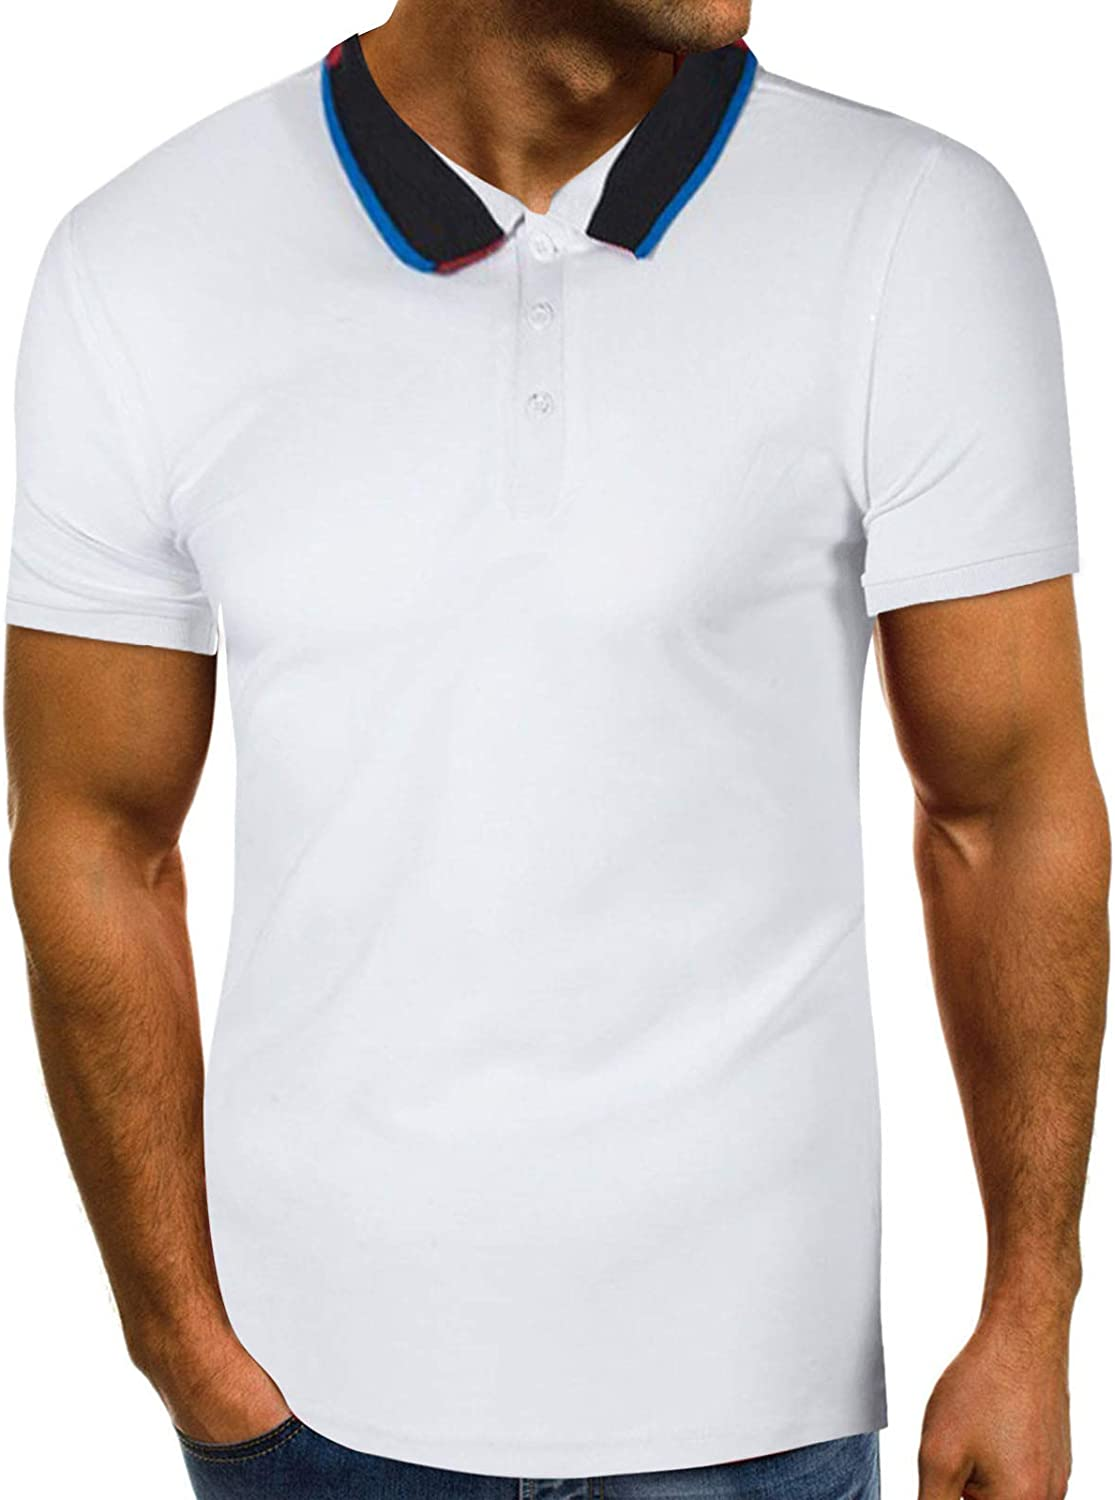 DZQUY Men's Casual Slim Fit Polo Shirt with Pockets 1/4 Zip Short Sleeve Classic Hipster Hip Hop Workout Muscle Tops T-Shirts